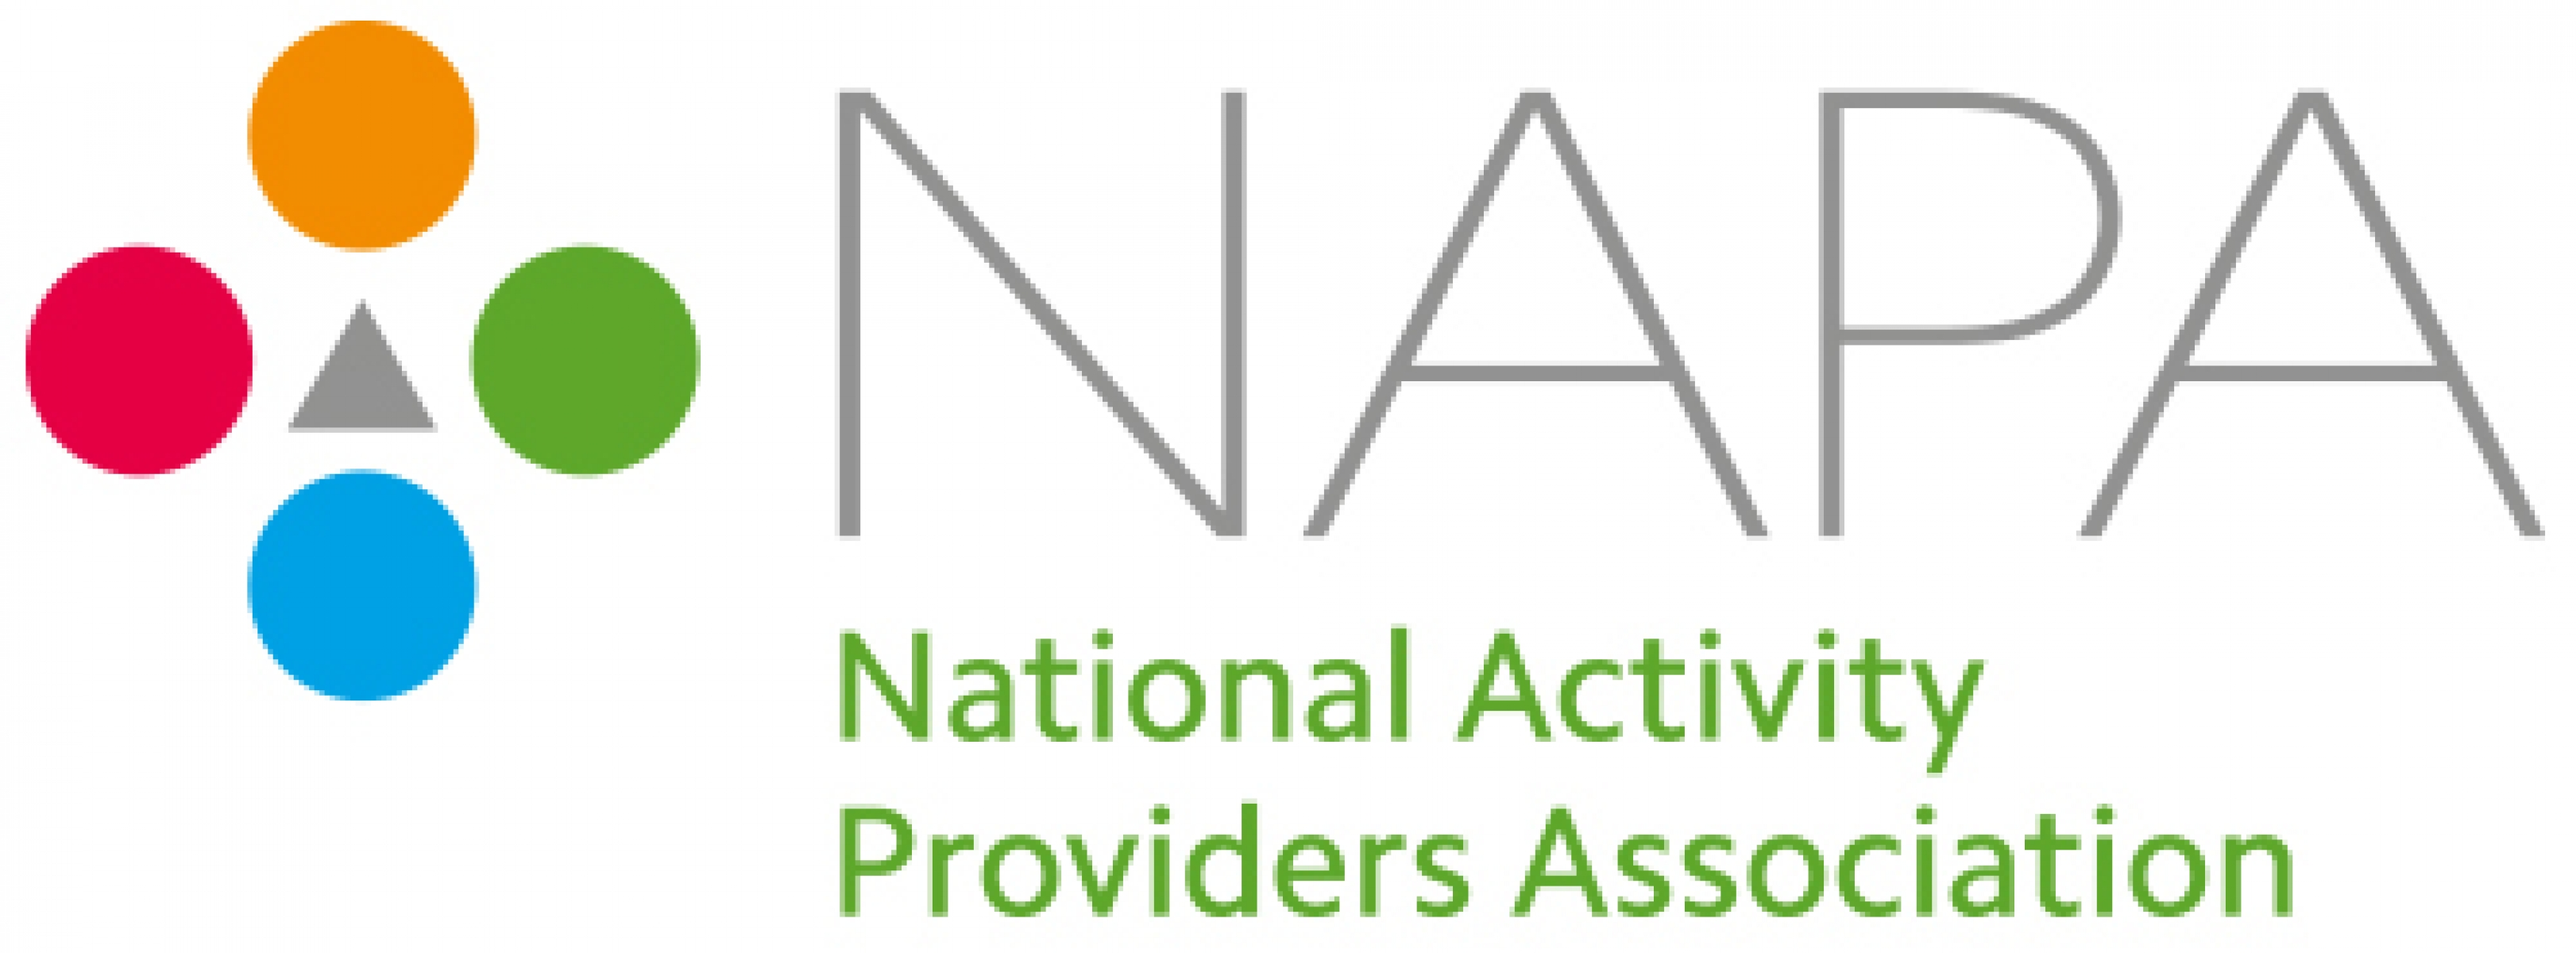 National Activity Providers Association eCards